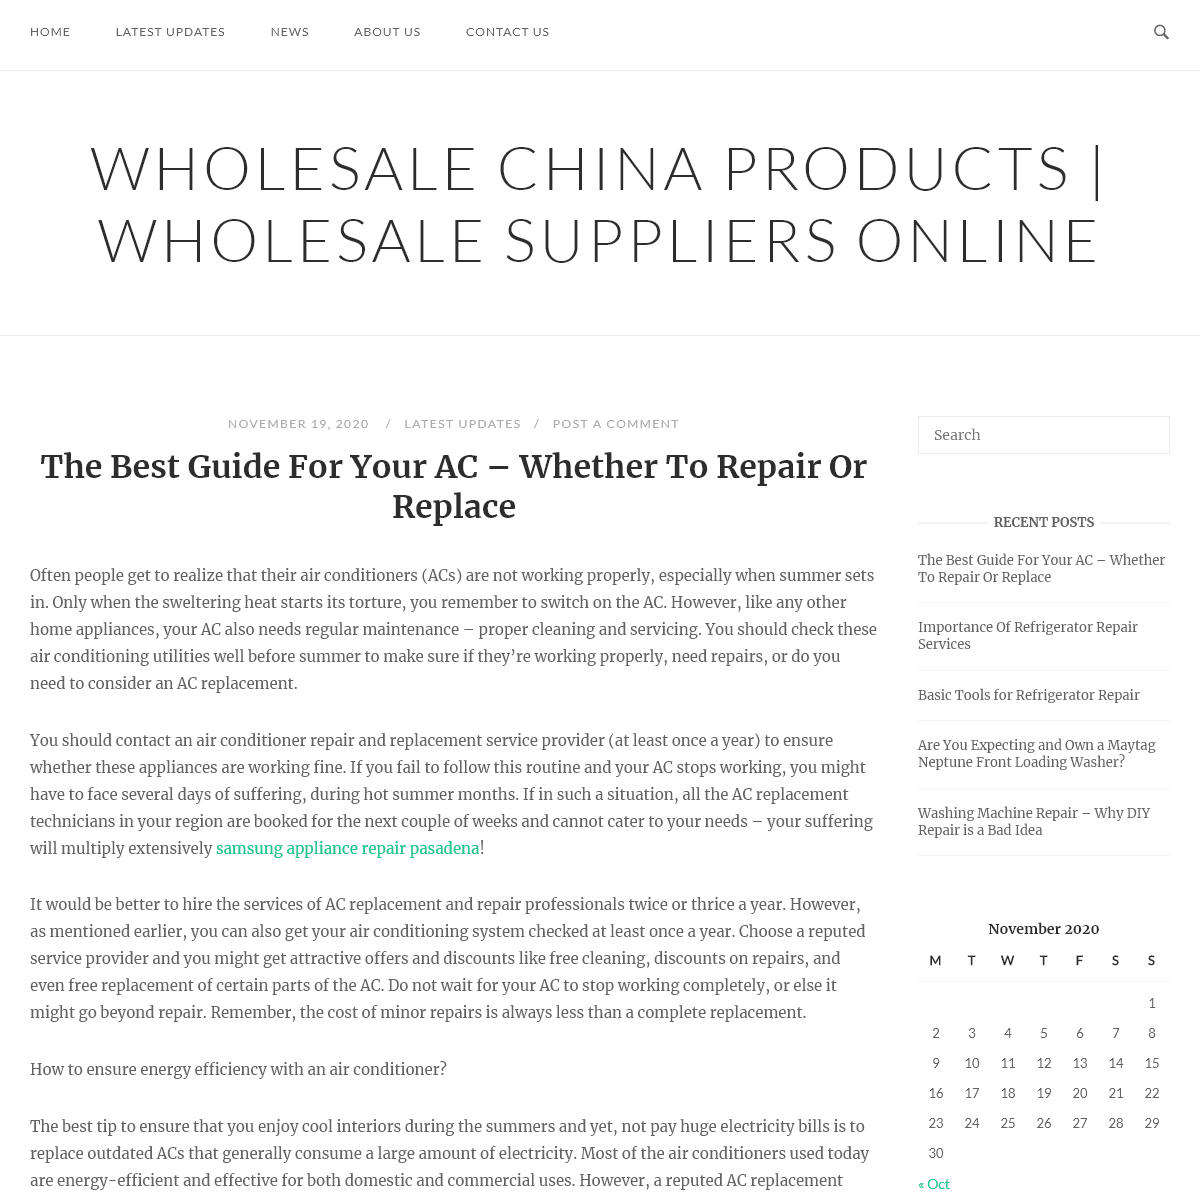 Wholesale China Products - Wholesale Suppliers Online -